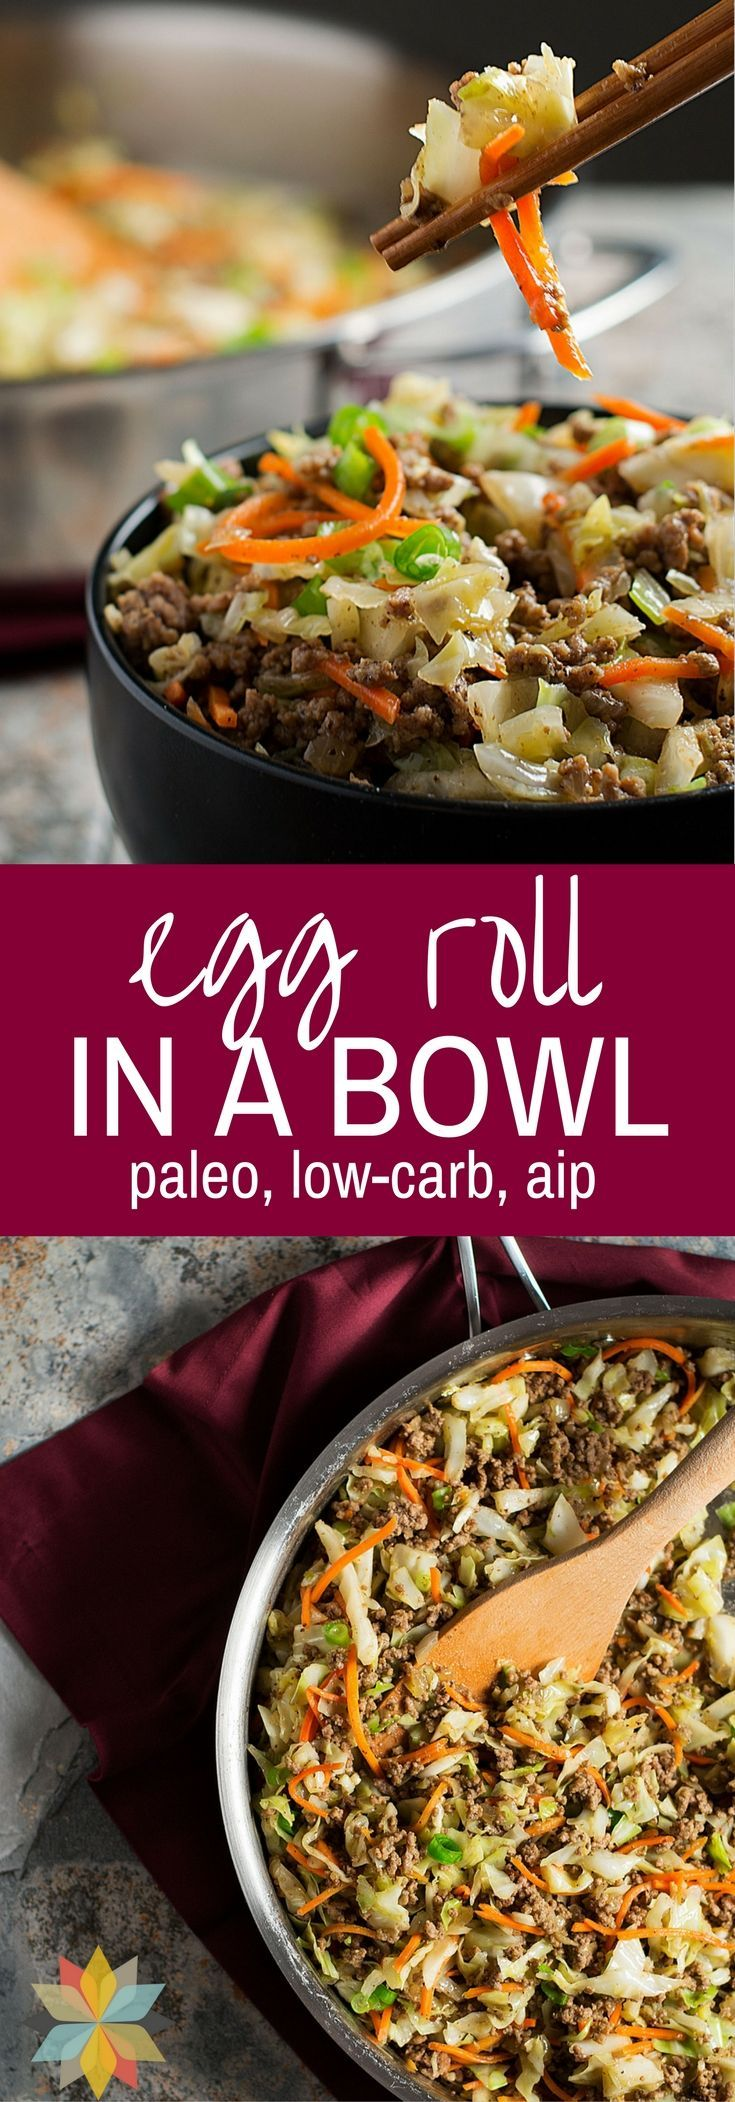 This Egg Roll in a Bowl has all of the great flavor of an Egg Roll, but without the fuss or carbs of the wrappers!  via @wholenewmom